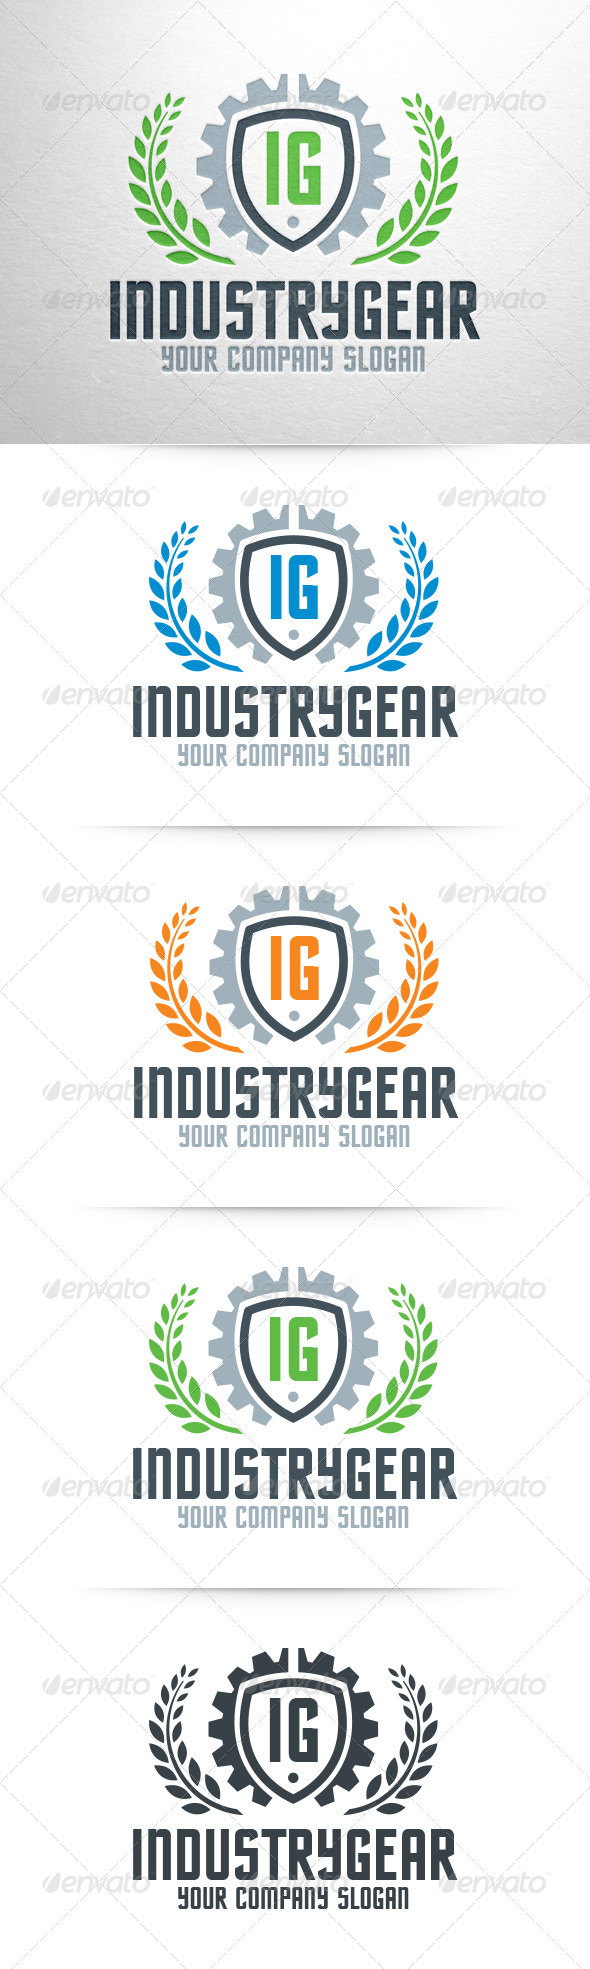 GraphicRiver Industry Gear Logo Template 8329874